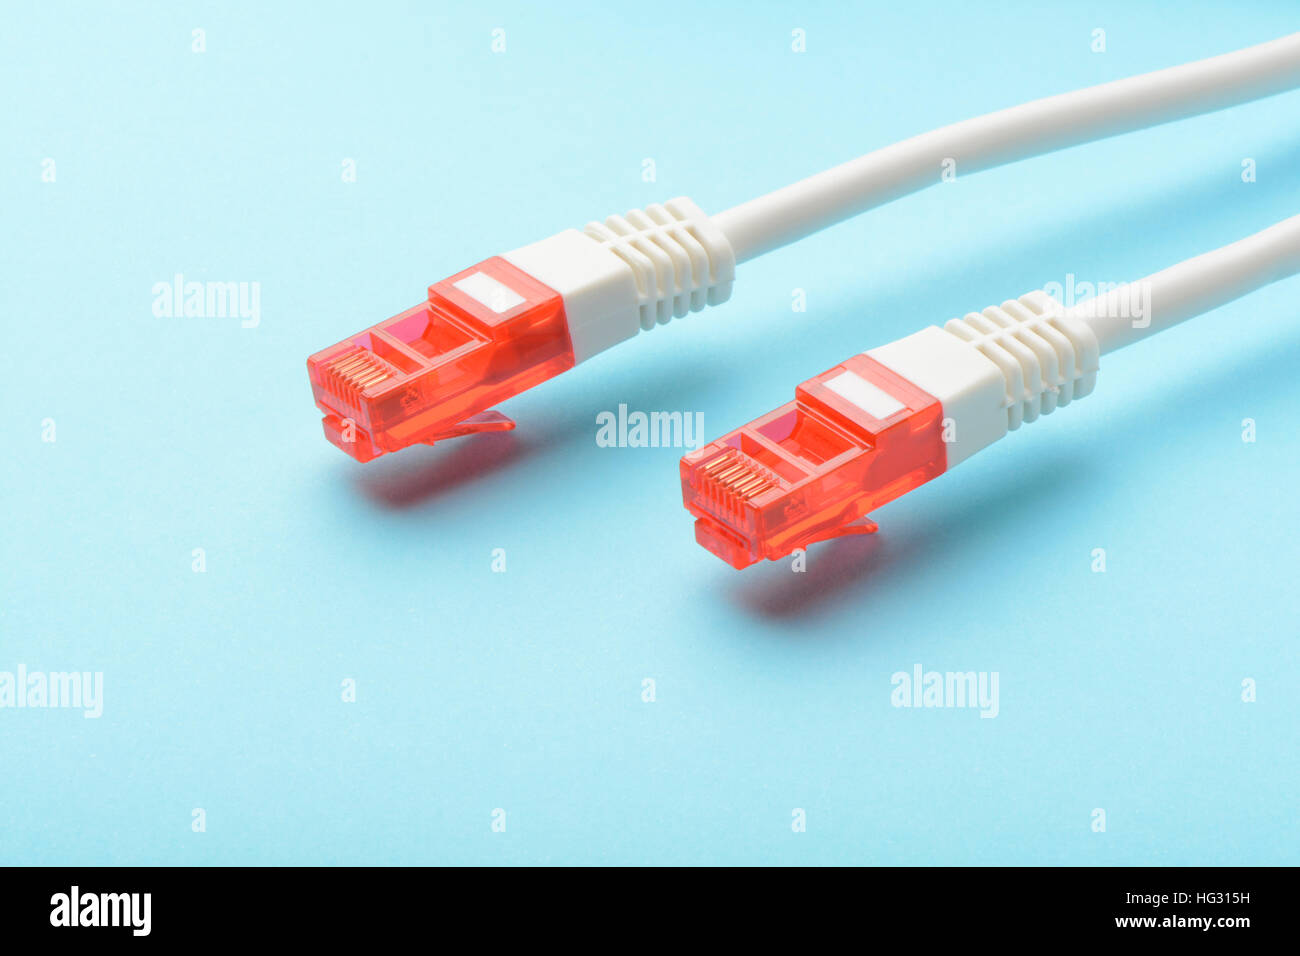 Adsl Cable Stock Photos & Adsl Cable Stock Images - Alamy